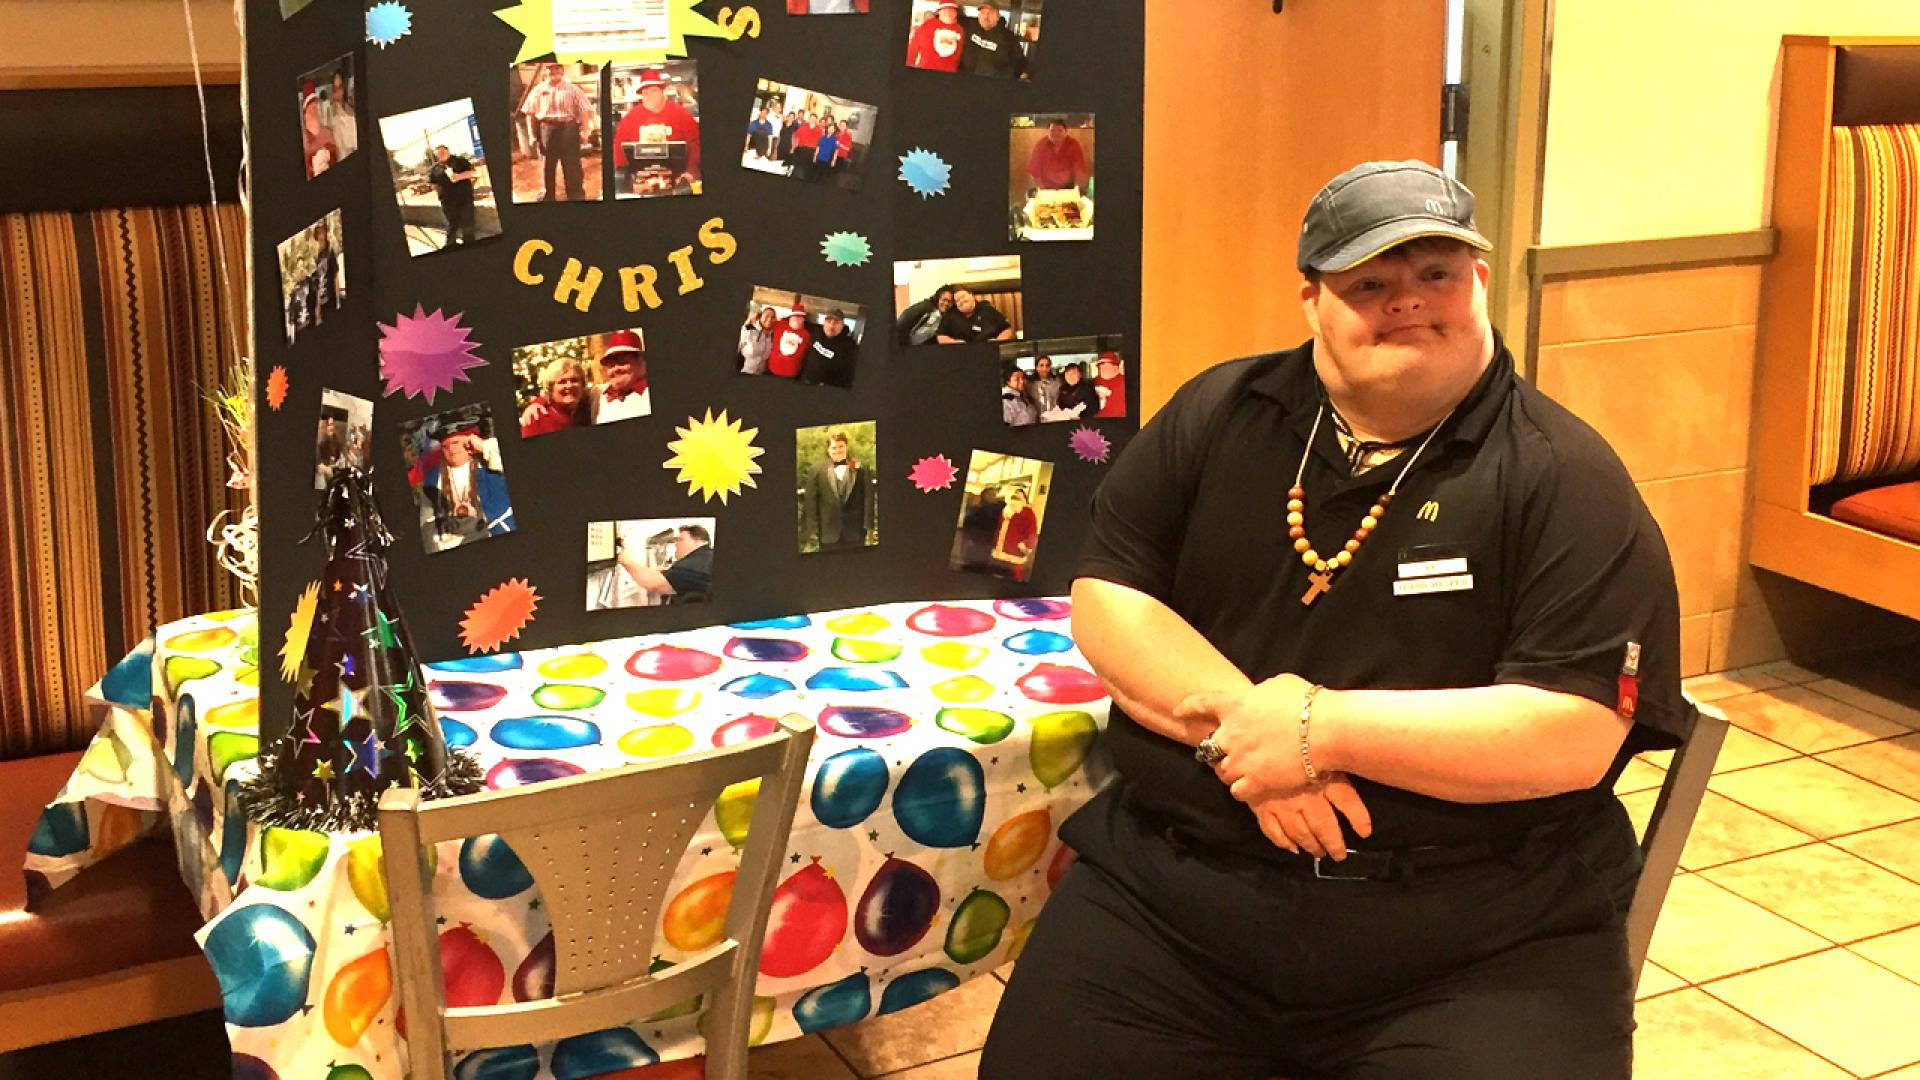 Chris Campbell has worked at McDonald's for 27 years.